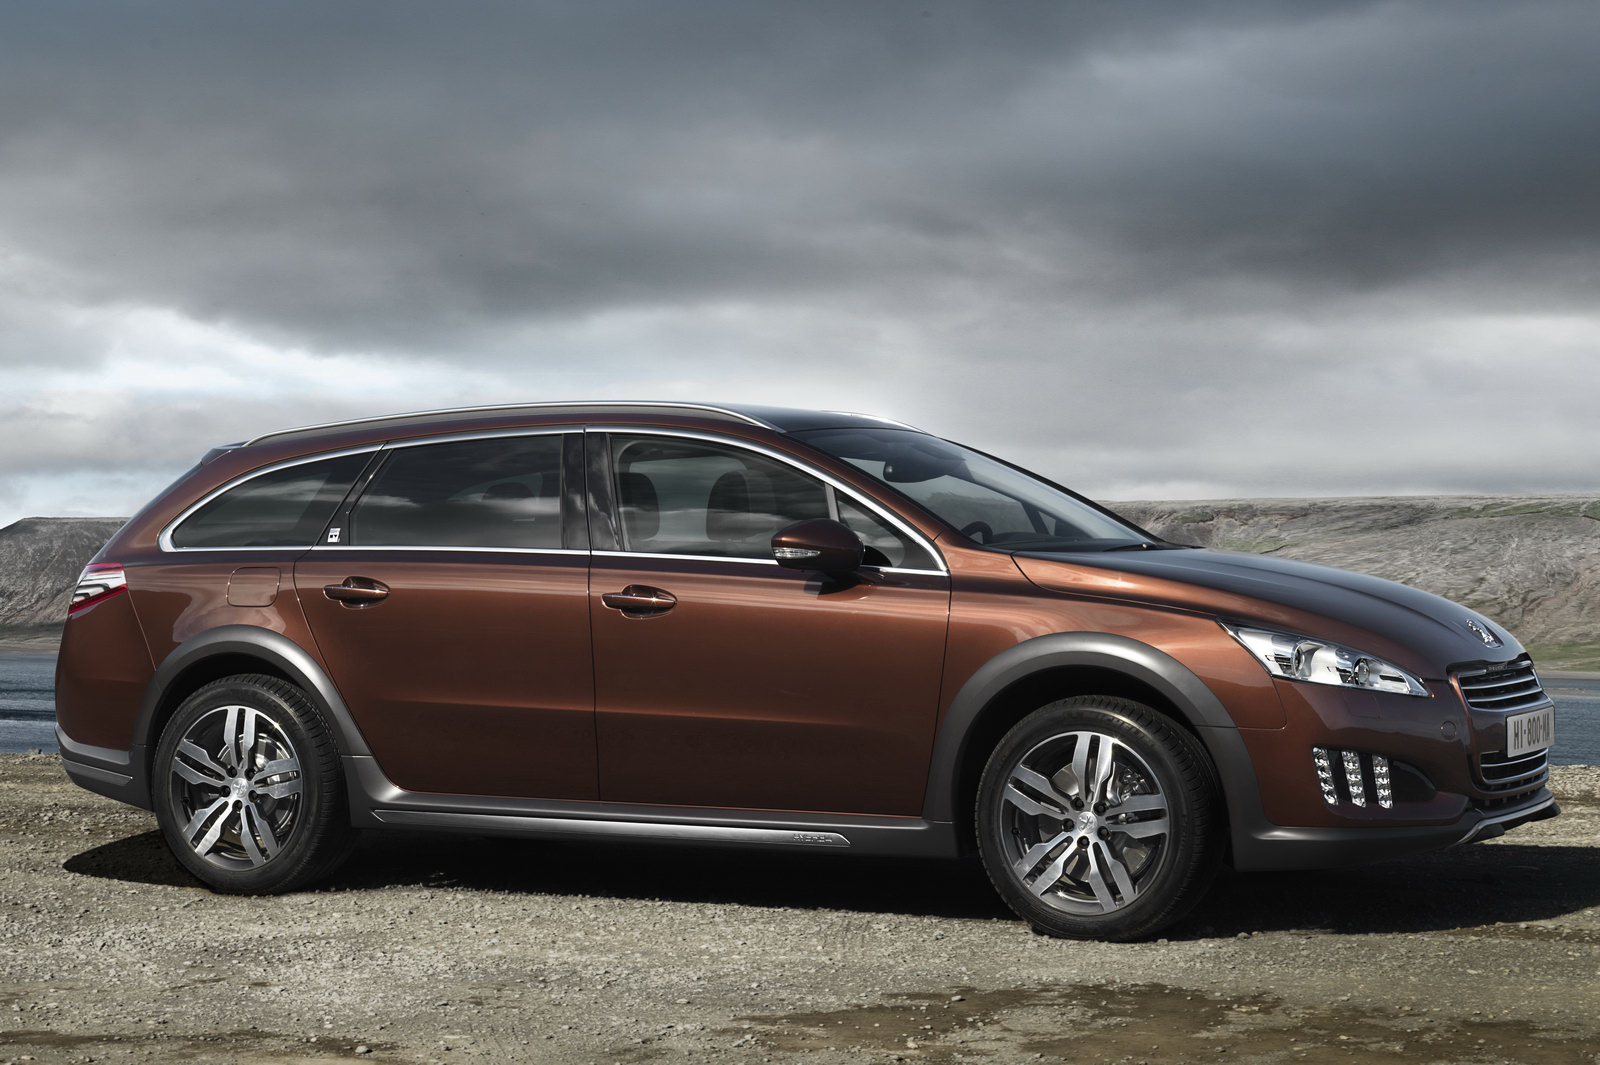 Peuegeot 508 RXH1 The new Peugeot 508 RXH outdoes Audi's A4 Allroad Quattro